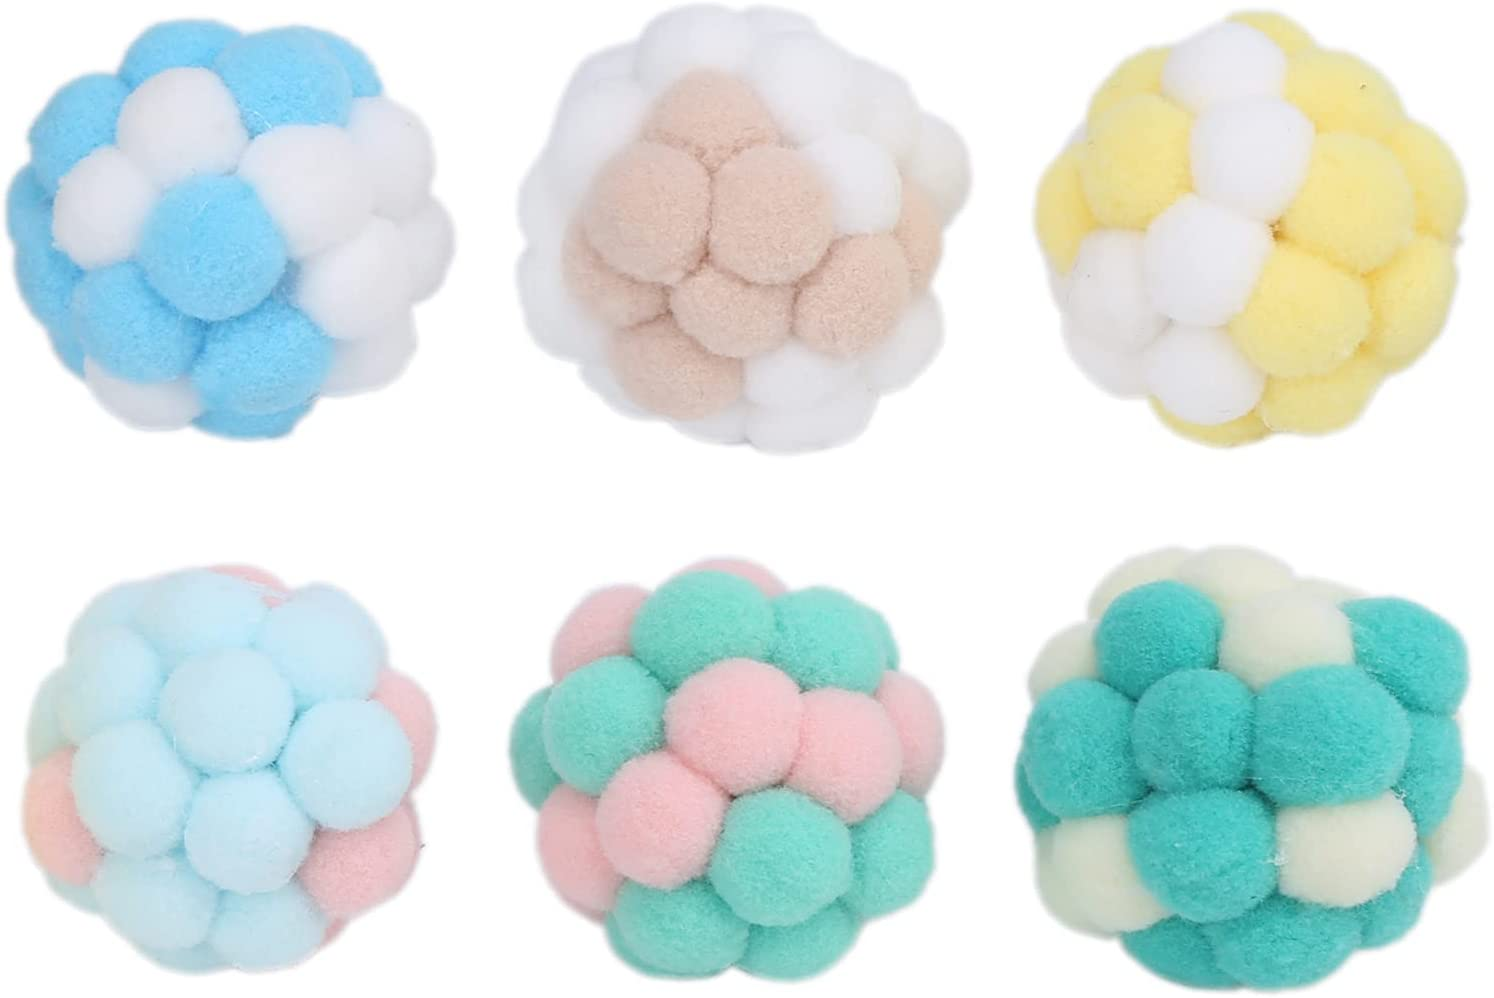 6PCS 5 ☆ very popular Cat Plush Max 74% OFF Ball Toys Interactive Chewing Squeaky Chasin